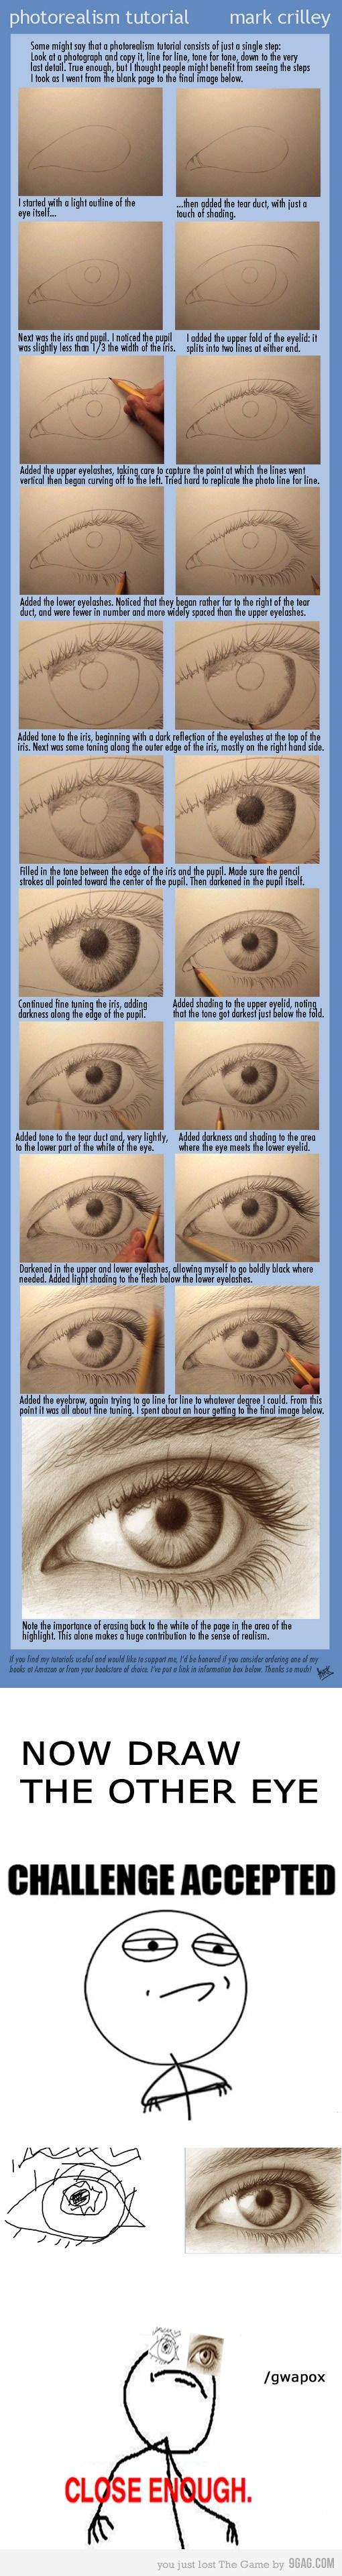 Draw an eyeArtists, Art Lessons, Drawing Eyes, Sketches, Draw Eyes, How To Drawing, Eye Tutorials, Eye Drawings, Eye Drawing Tutorials